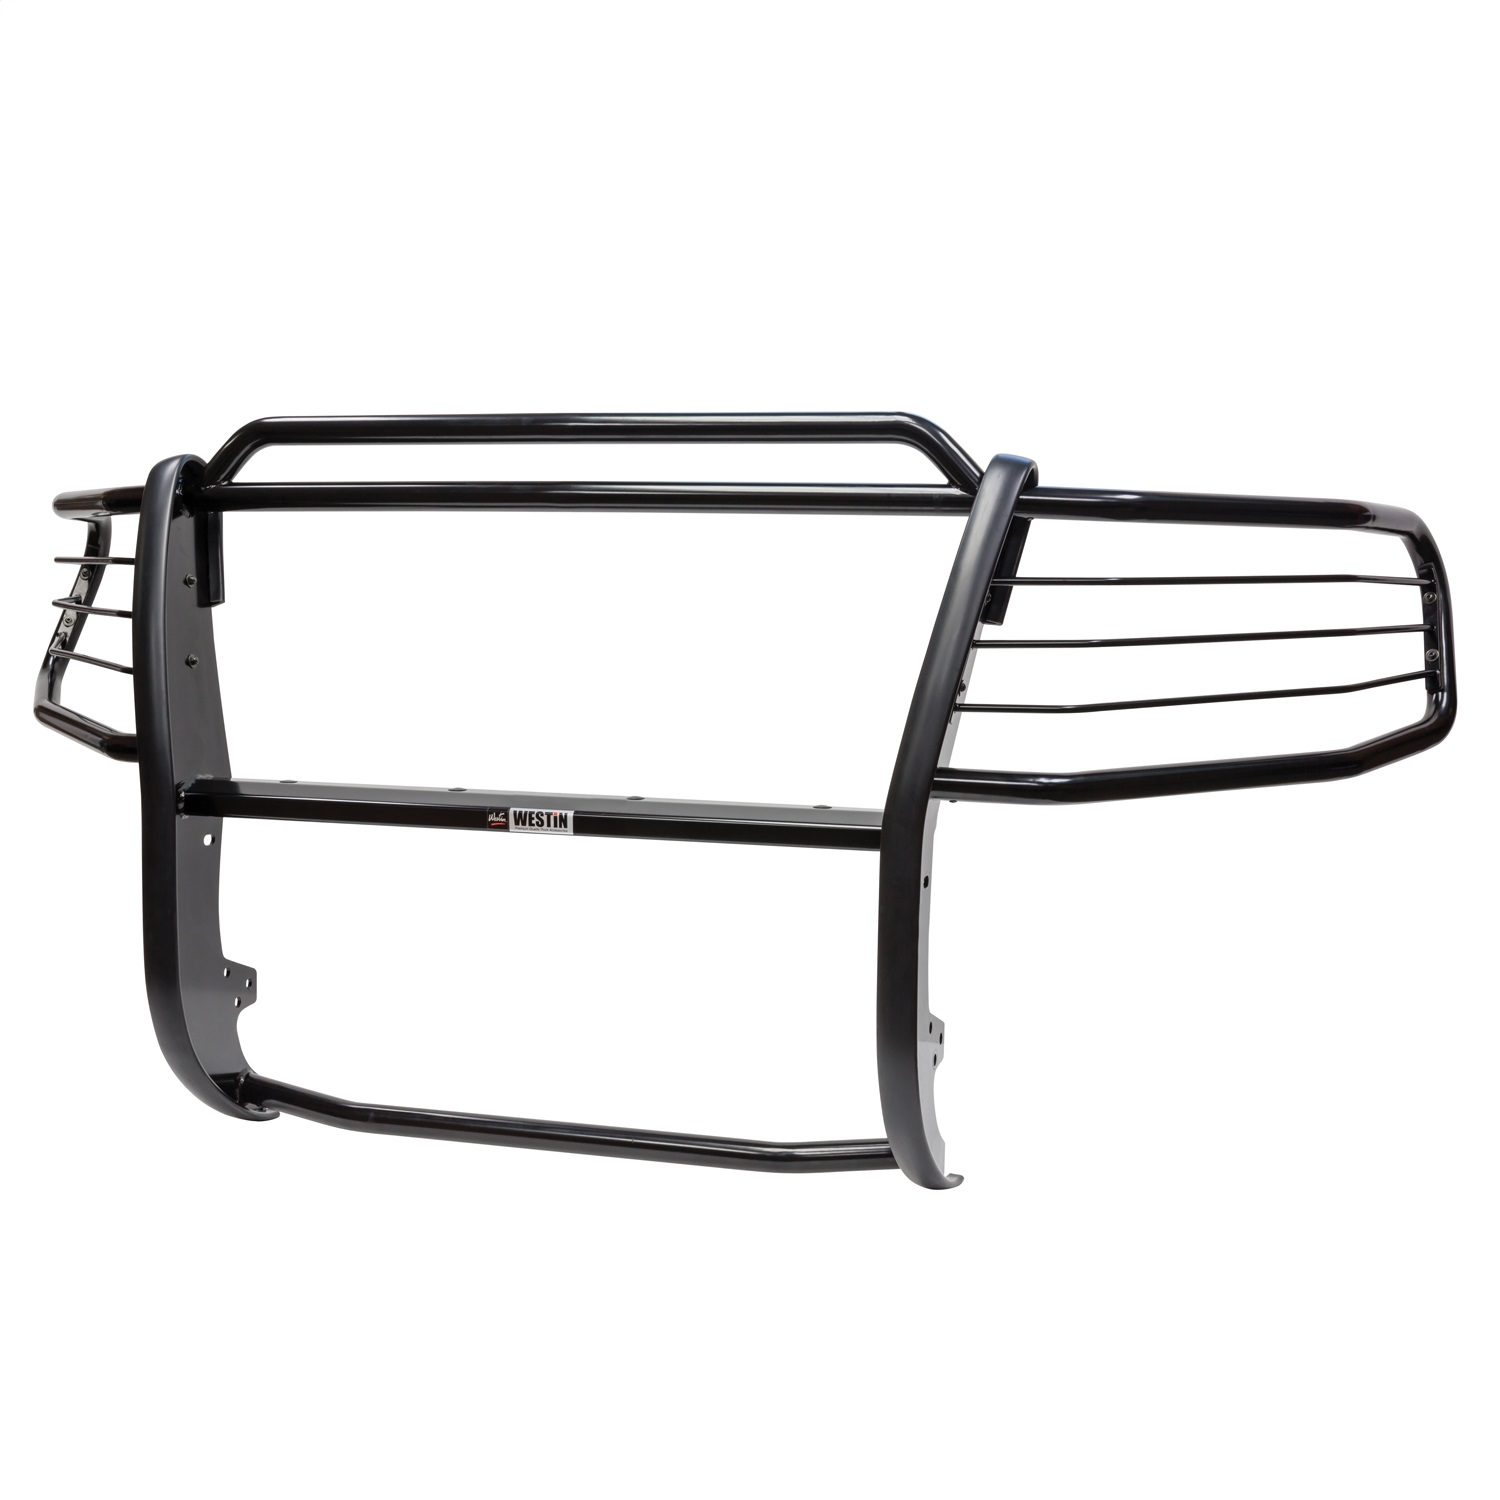 Westin Automotive Products 40-1004 Grille Guard